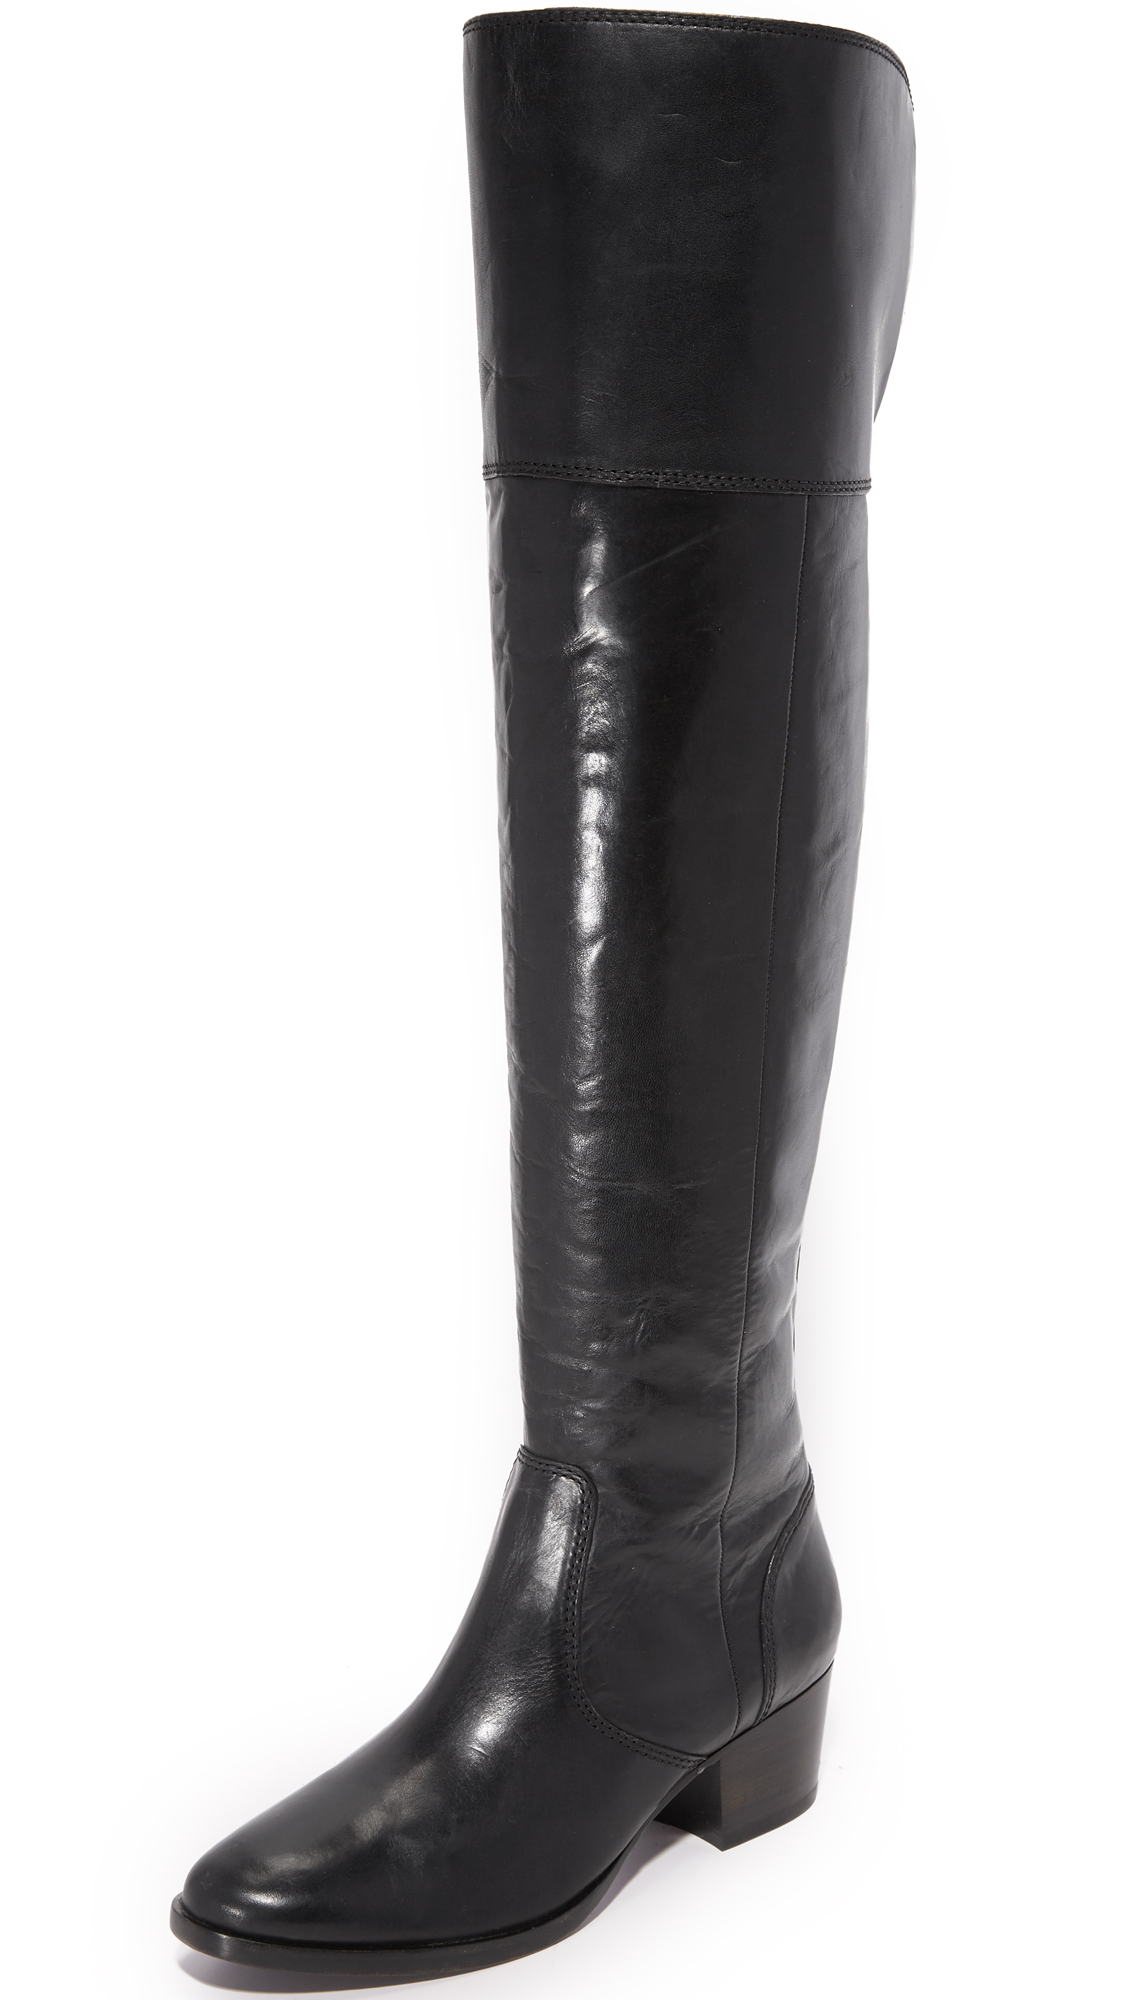 Frye Clara Over The Knee Boots - Black at Shopbop